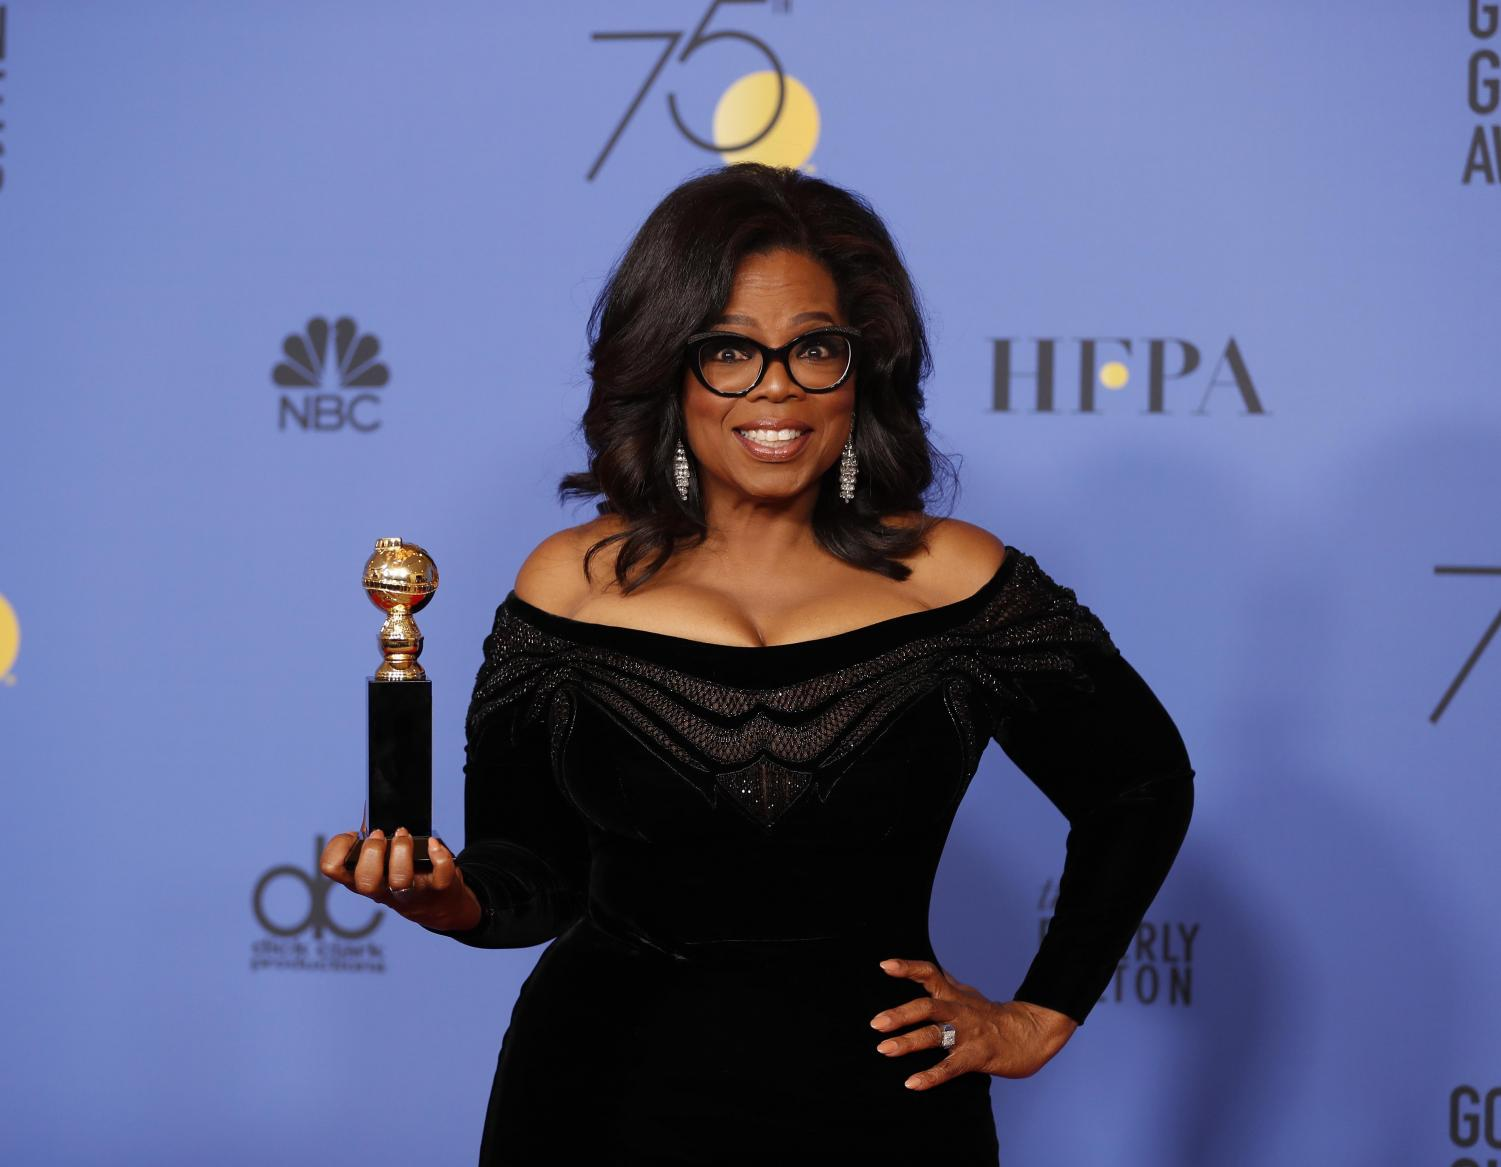 Opinion columnist Cristian Ortiz recaps Sunday's Golden Globe Awards ceremony, where Oprah Winfrey became the first black woman to be awarded the Cecil B. DeMille Award.